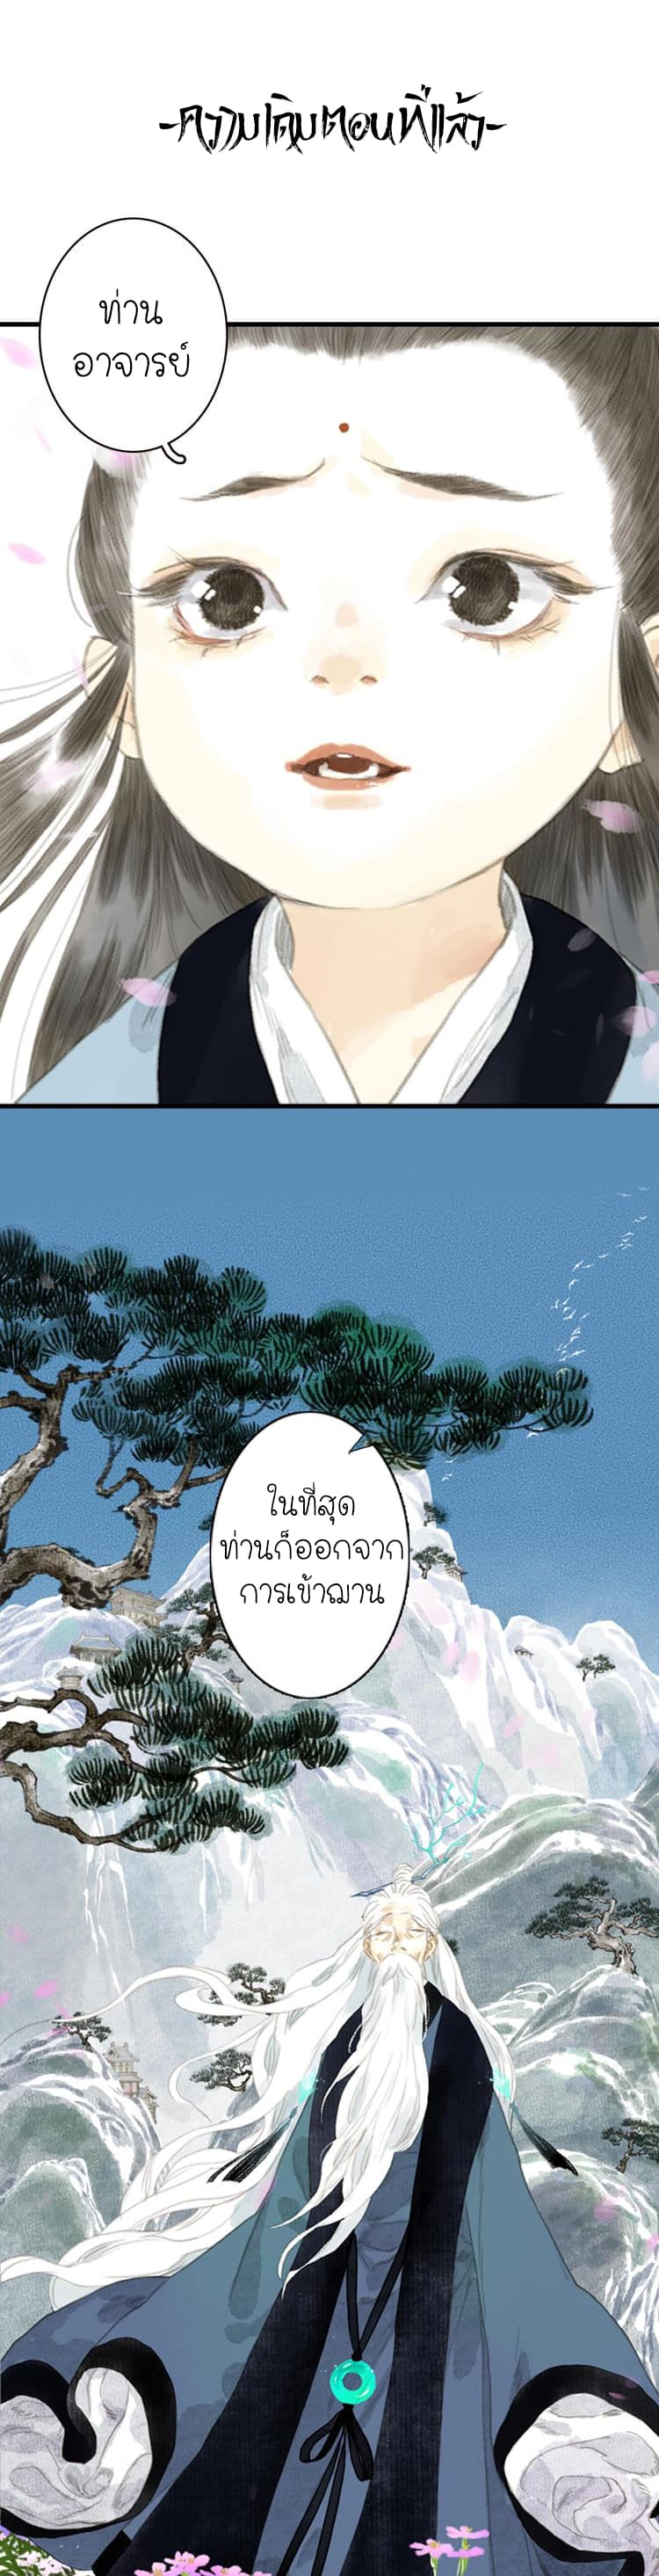 Song of the Sky Walkers-ตอนที่ 11